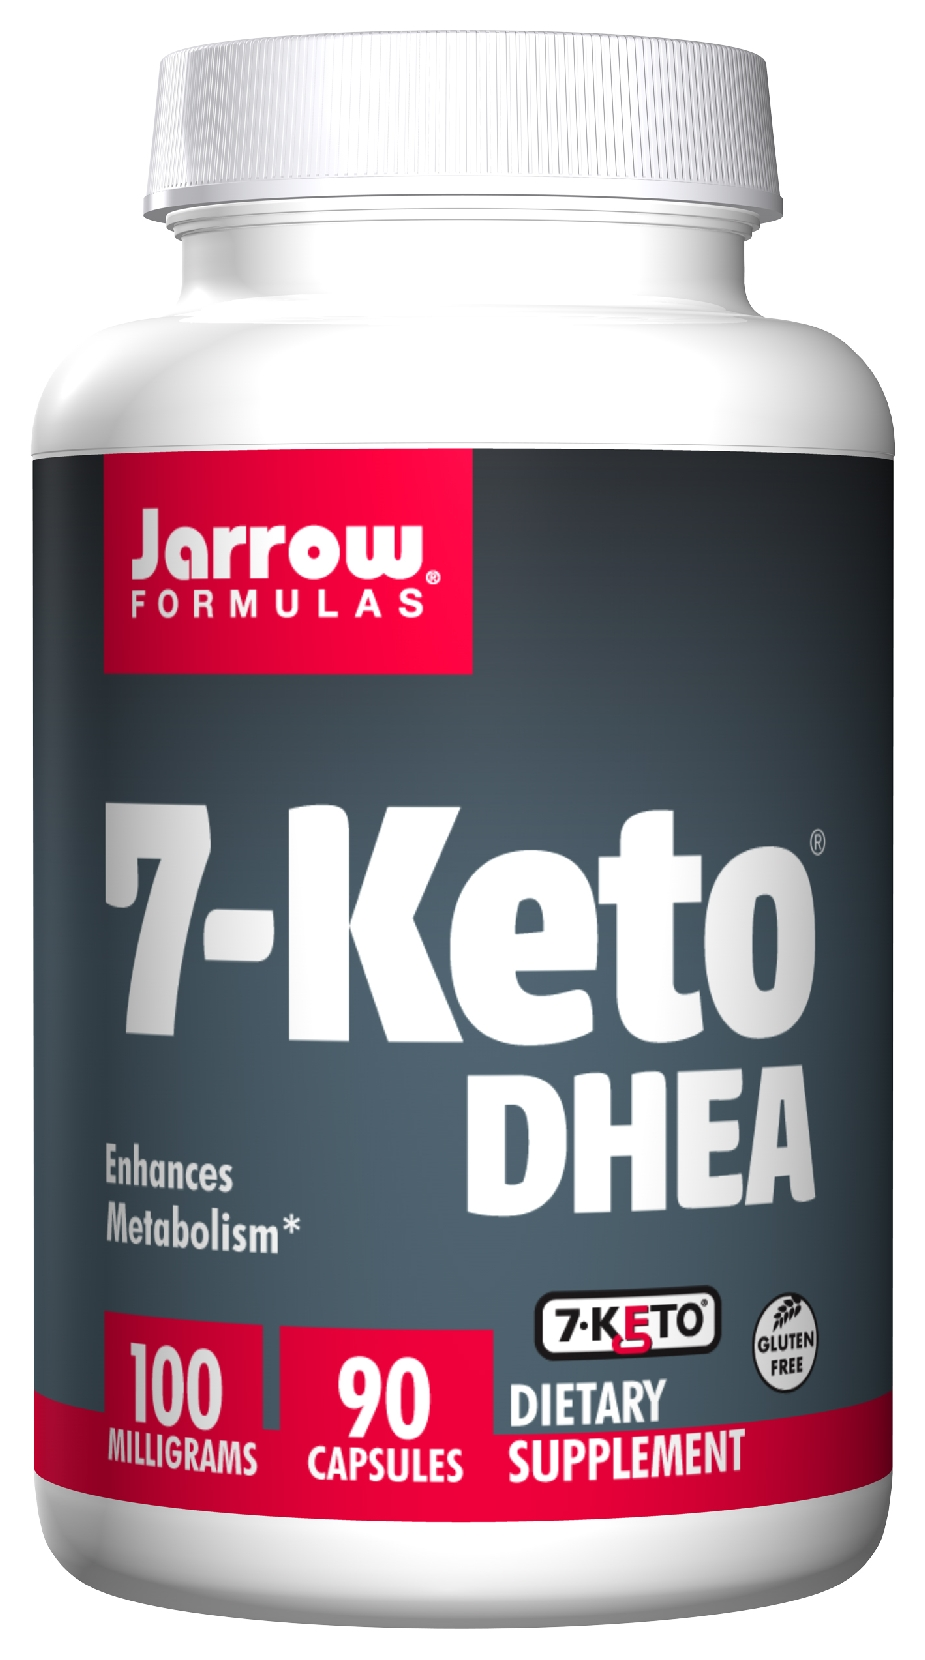 7-Keto DHEA 100 mg 90 caps by Jarrow Formulas